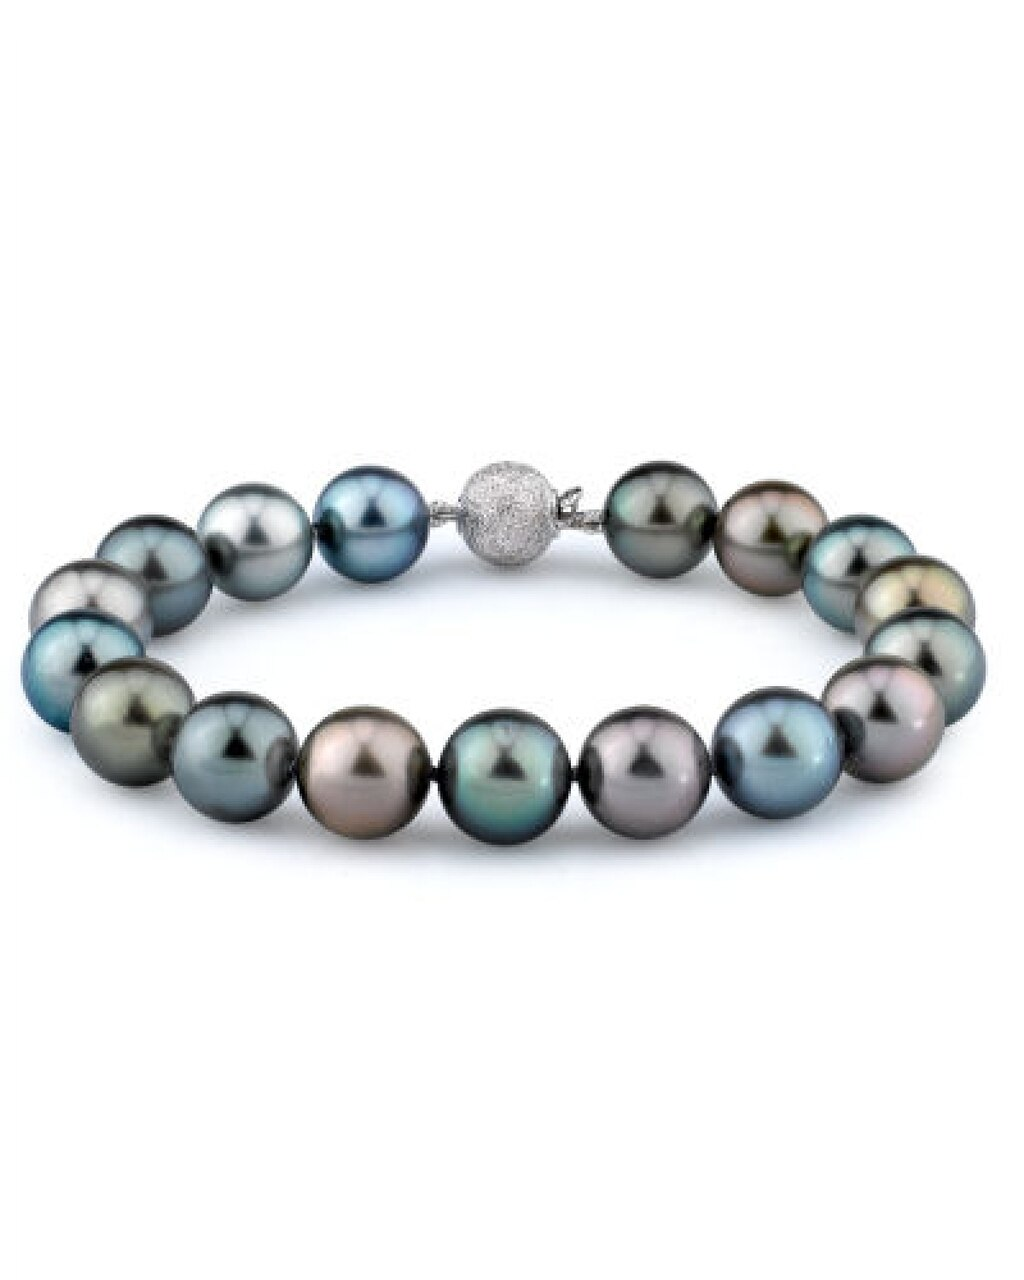 This elegant bracelet features 10.0-11.0mm Tahitian South Sea pearls, handpicked for their luminous luster